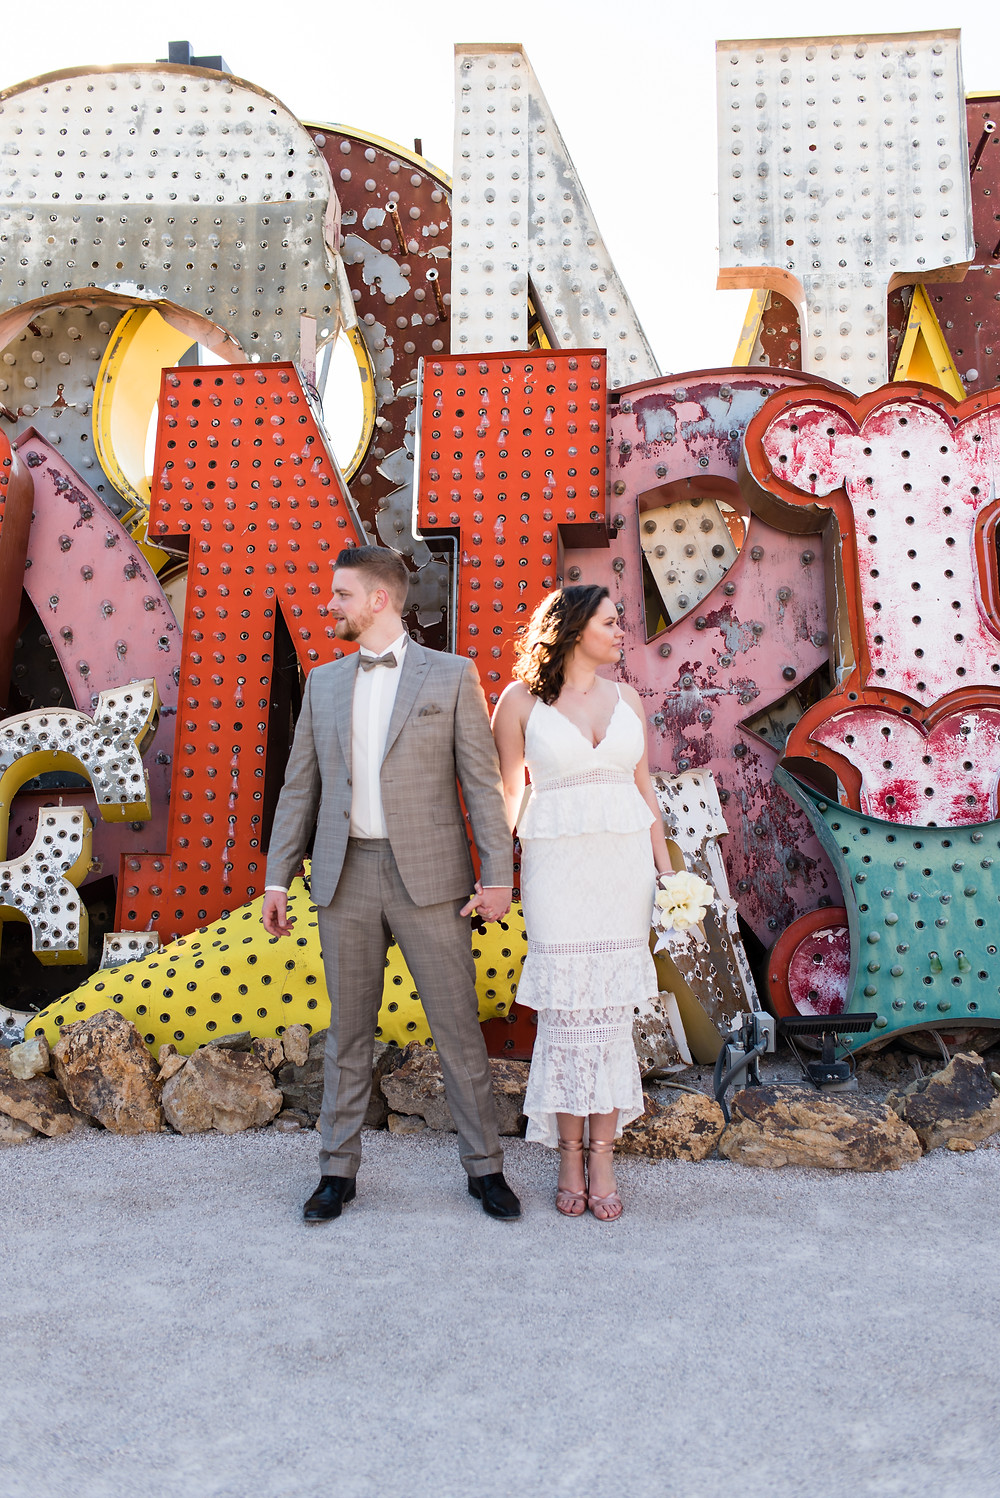 las vegas, las vegas elopement, neon museum, downtown vegas, downtown las vegas, downtown photography, neon boneyard, vintage vegas, vegas photographer, elope, vegas, wedding, wedding photographer, vegas photography, vegas photography, bride and groom, wedding portraits, wedding inspiration, weddings that rock